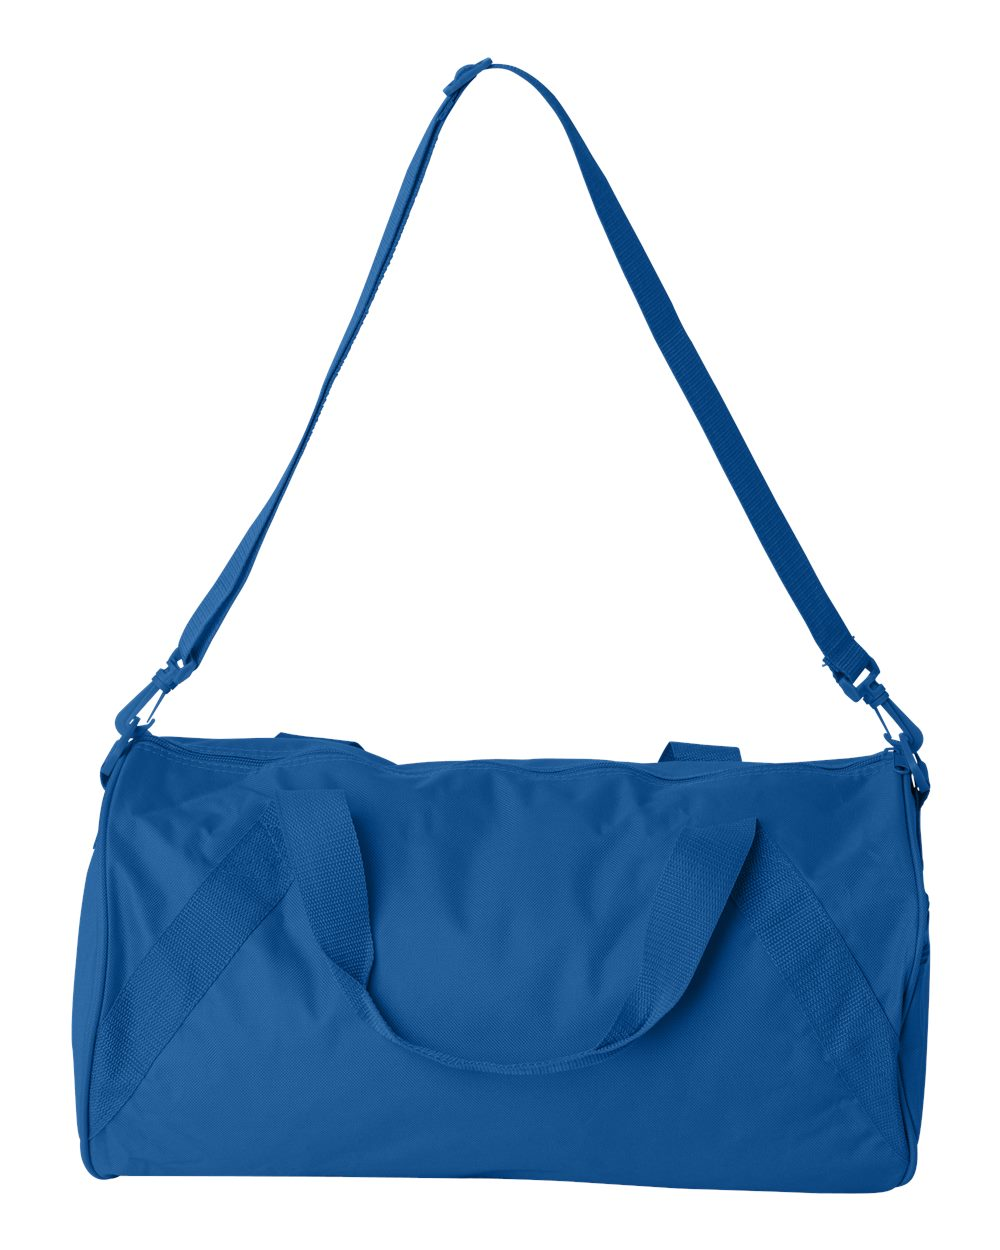 Liberty-Bags-Recycled-Small-Duffel-Gym-Bag-8805-Size-18-034-x-10-034-x-10-034 thumbnail 4